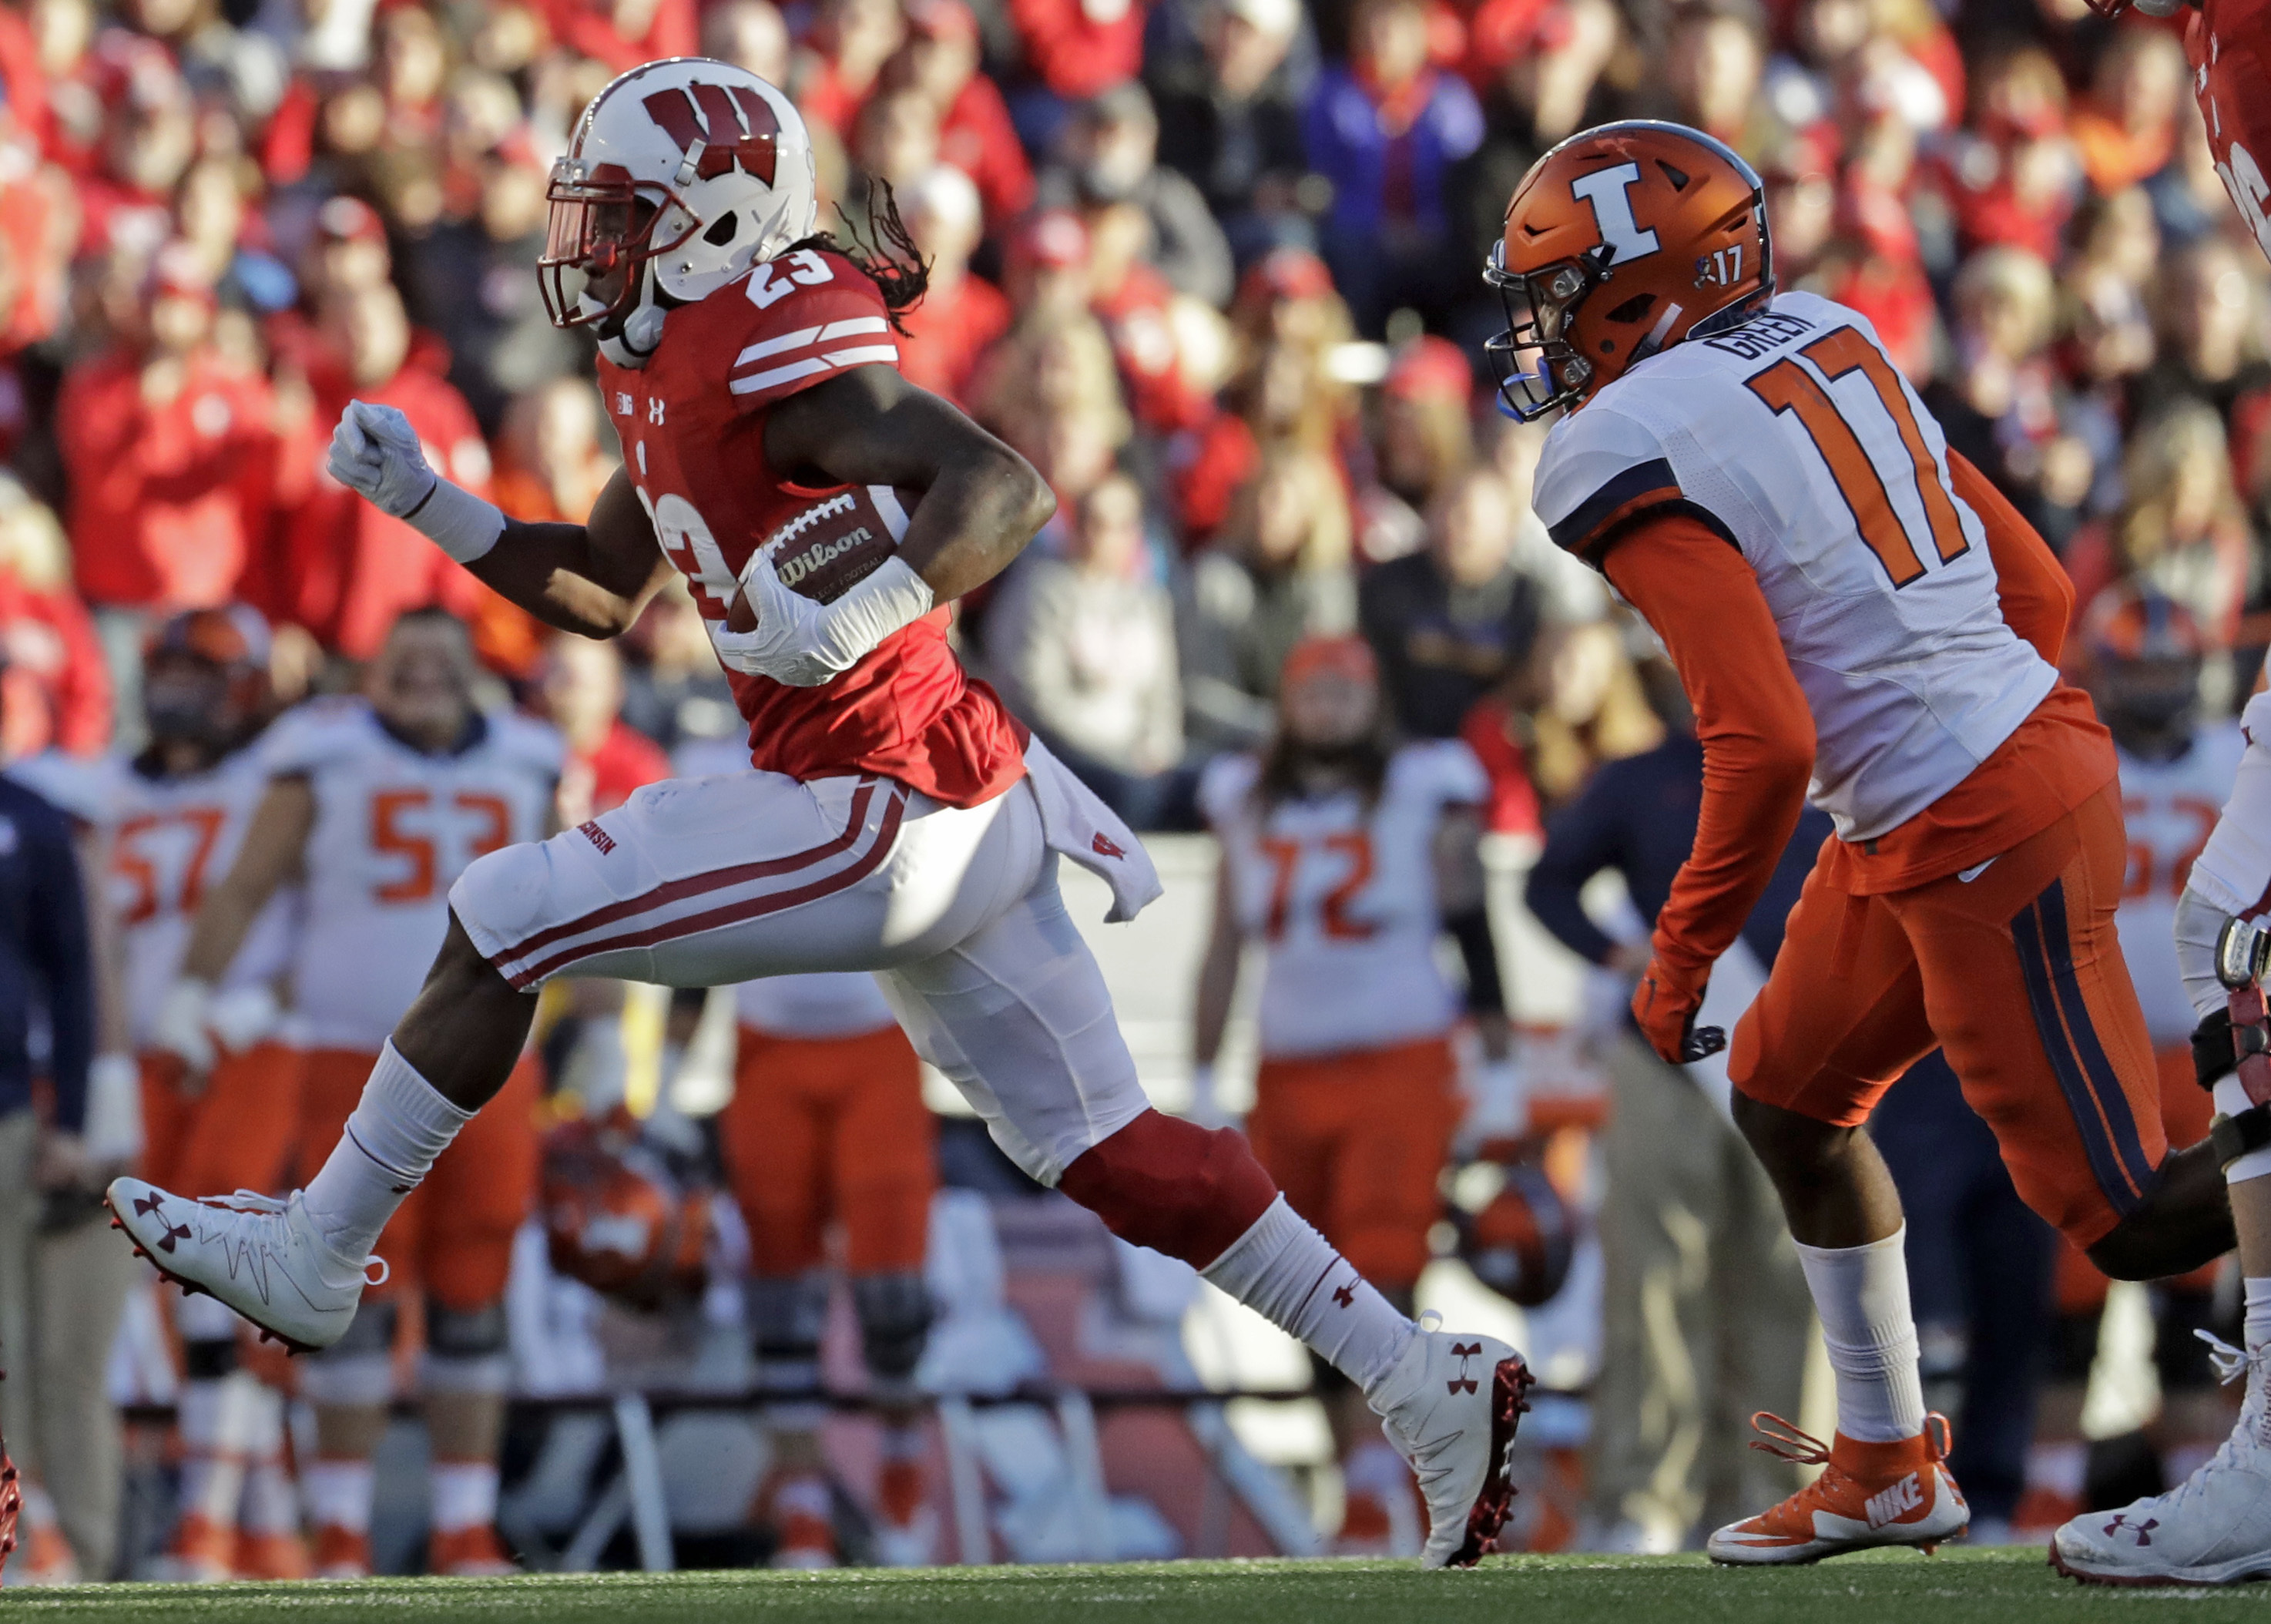 Wisconsin's Dare Ogunbowale runs during the first half of an NCAA college football game against Illinois Saturday, Nov. 12, 2016, in Madison, Wis. (AP Photo/Morry Gash)